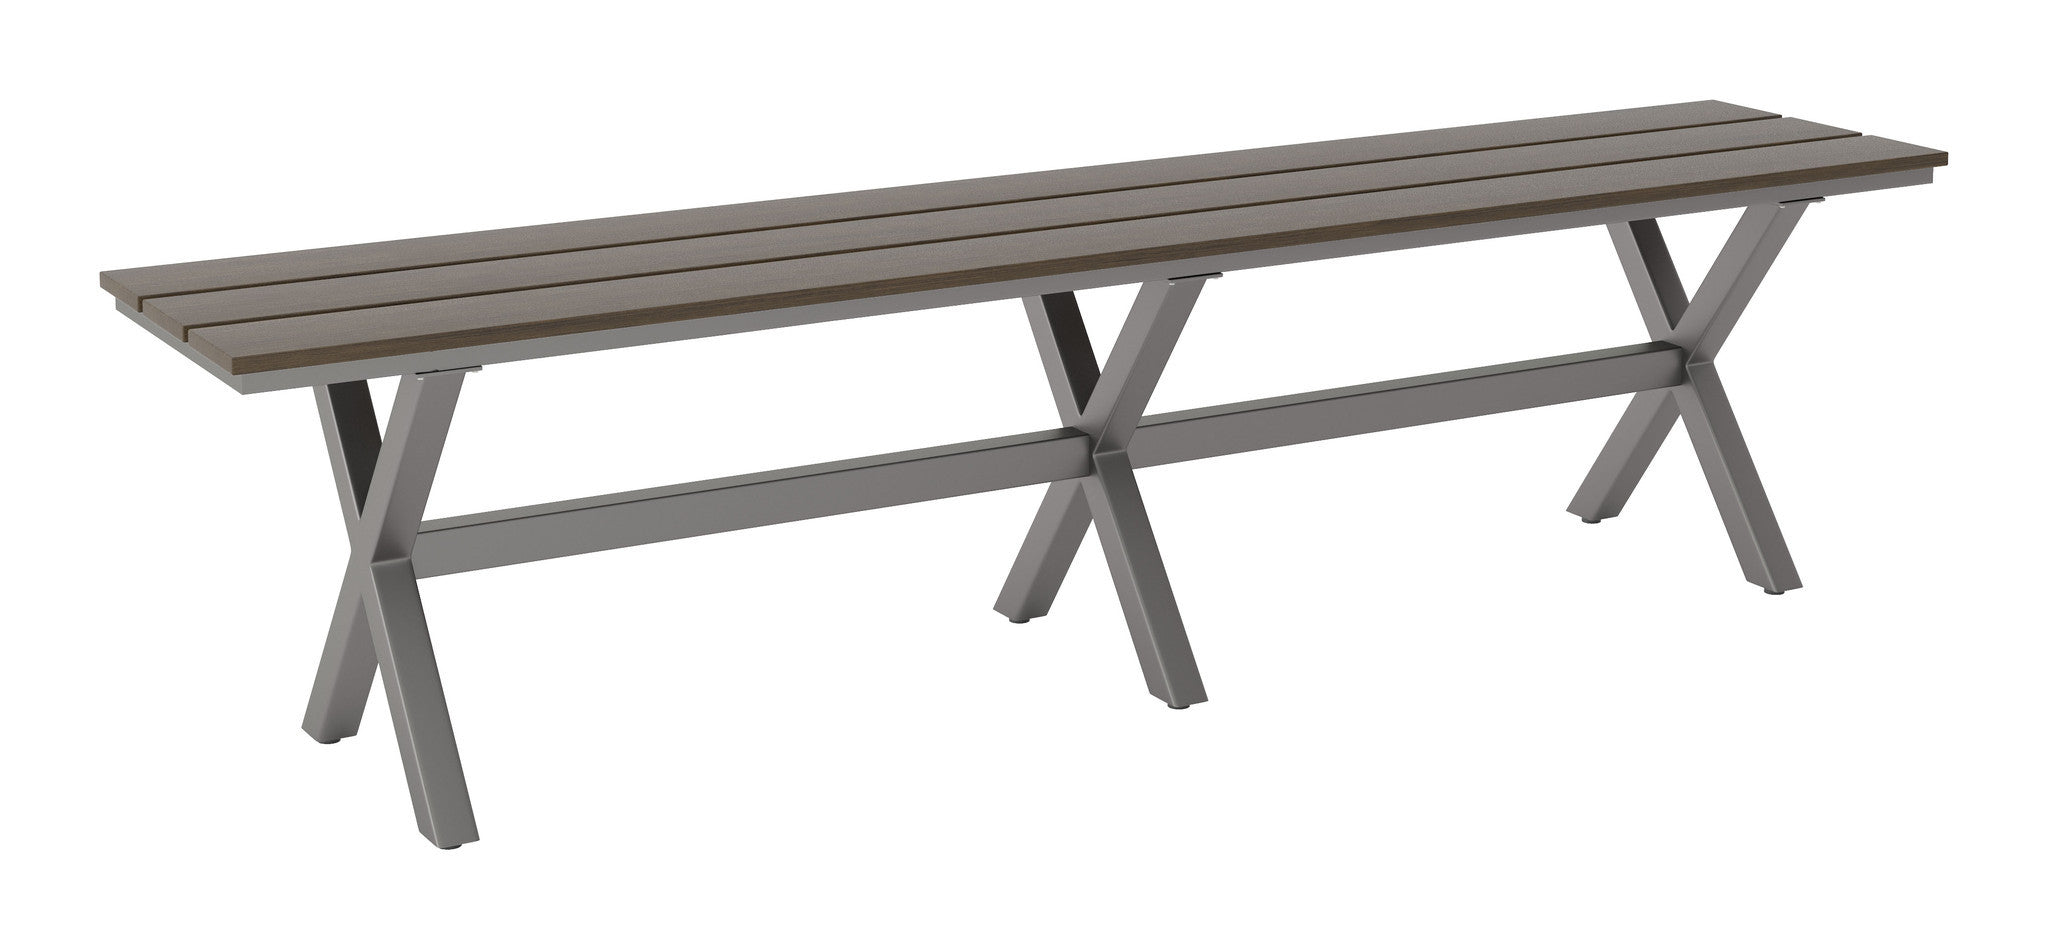 Bodega Outdoor Dining Bench In Industrial Gray U0026 Brown Polywood Outdoor  Benches Alan Decor ...